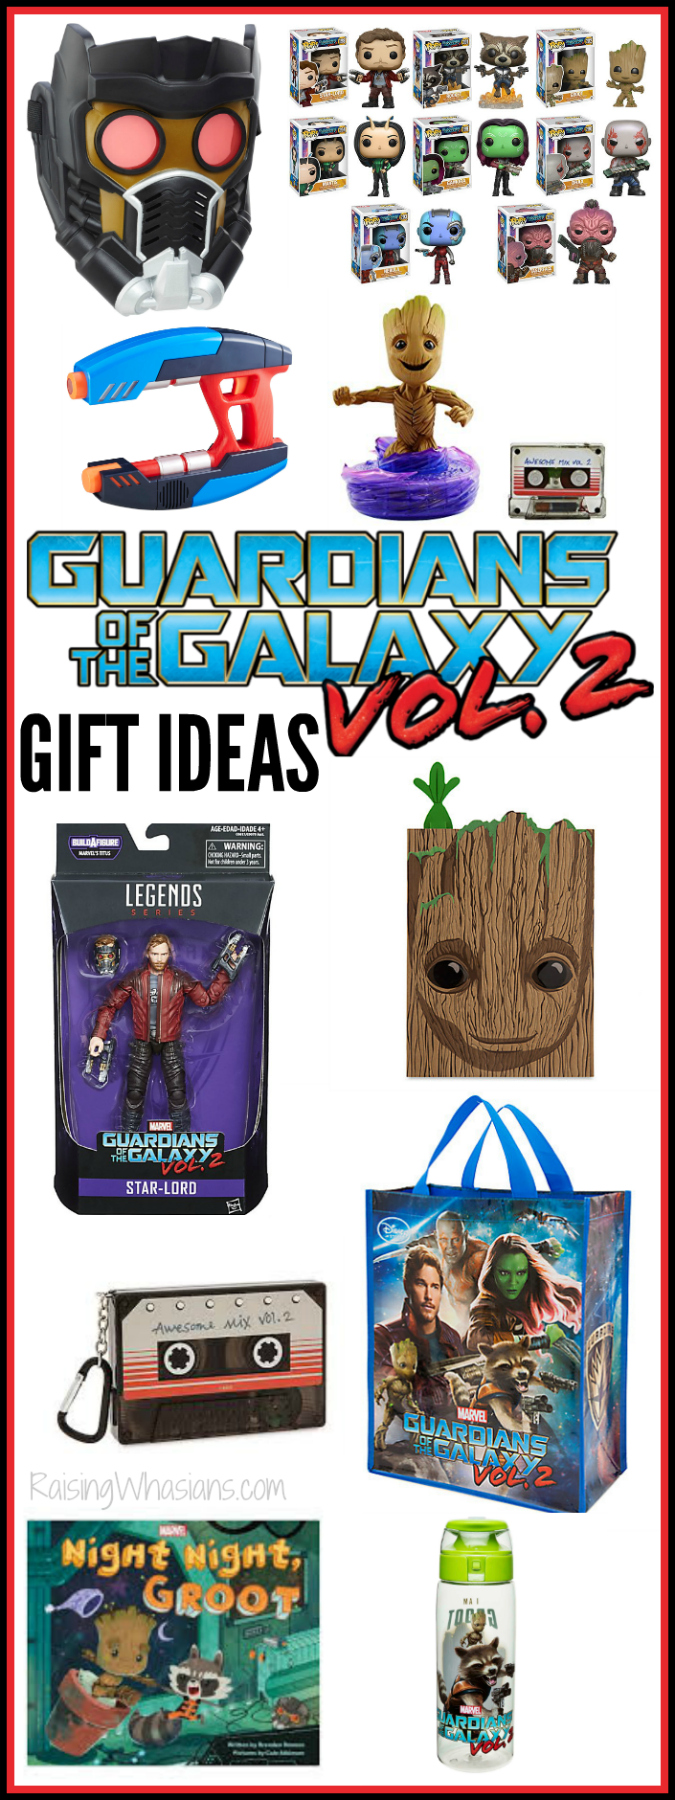 Guardians of the galaxy vol. 2 gift ideas pinterest